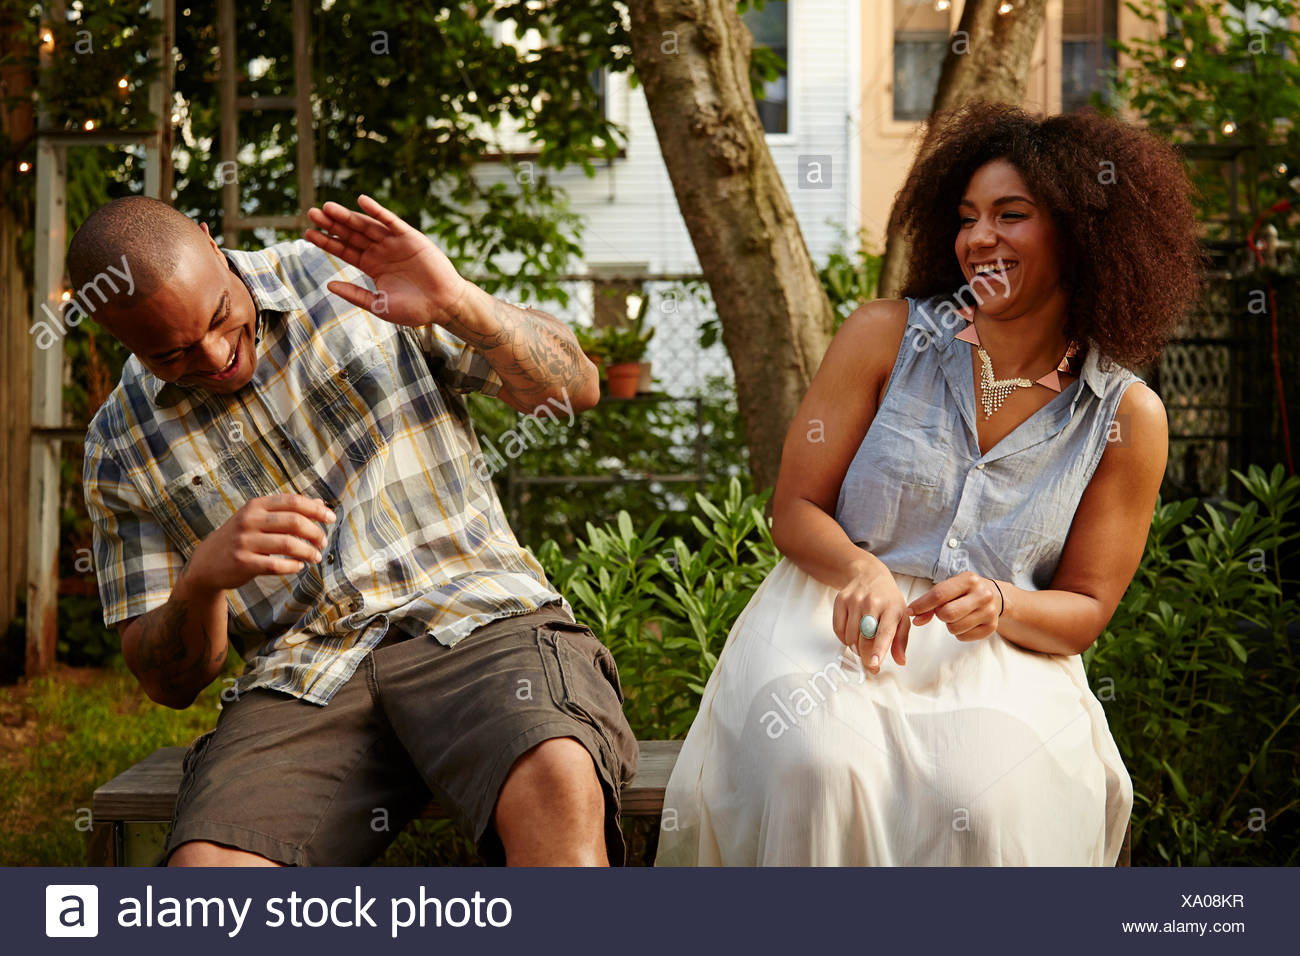 Mid adult man laughing with woman at garden party - Stock Image